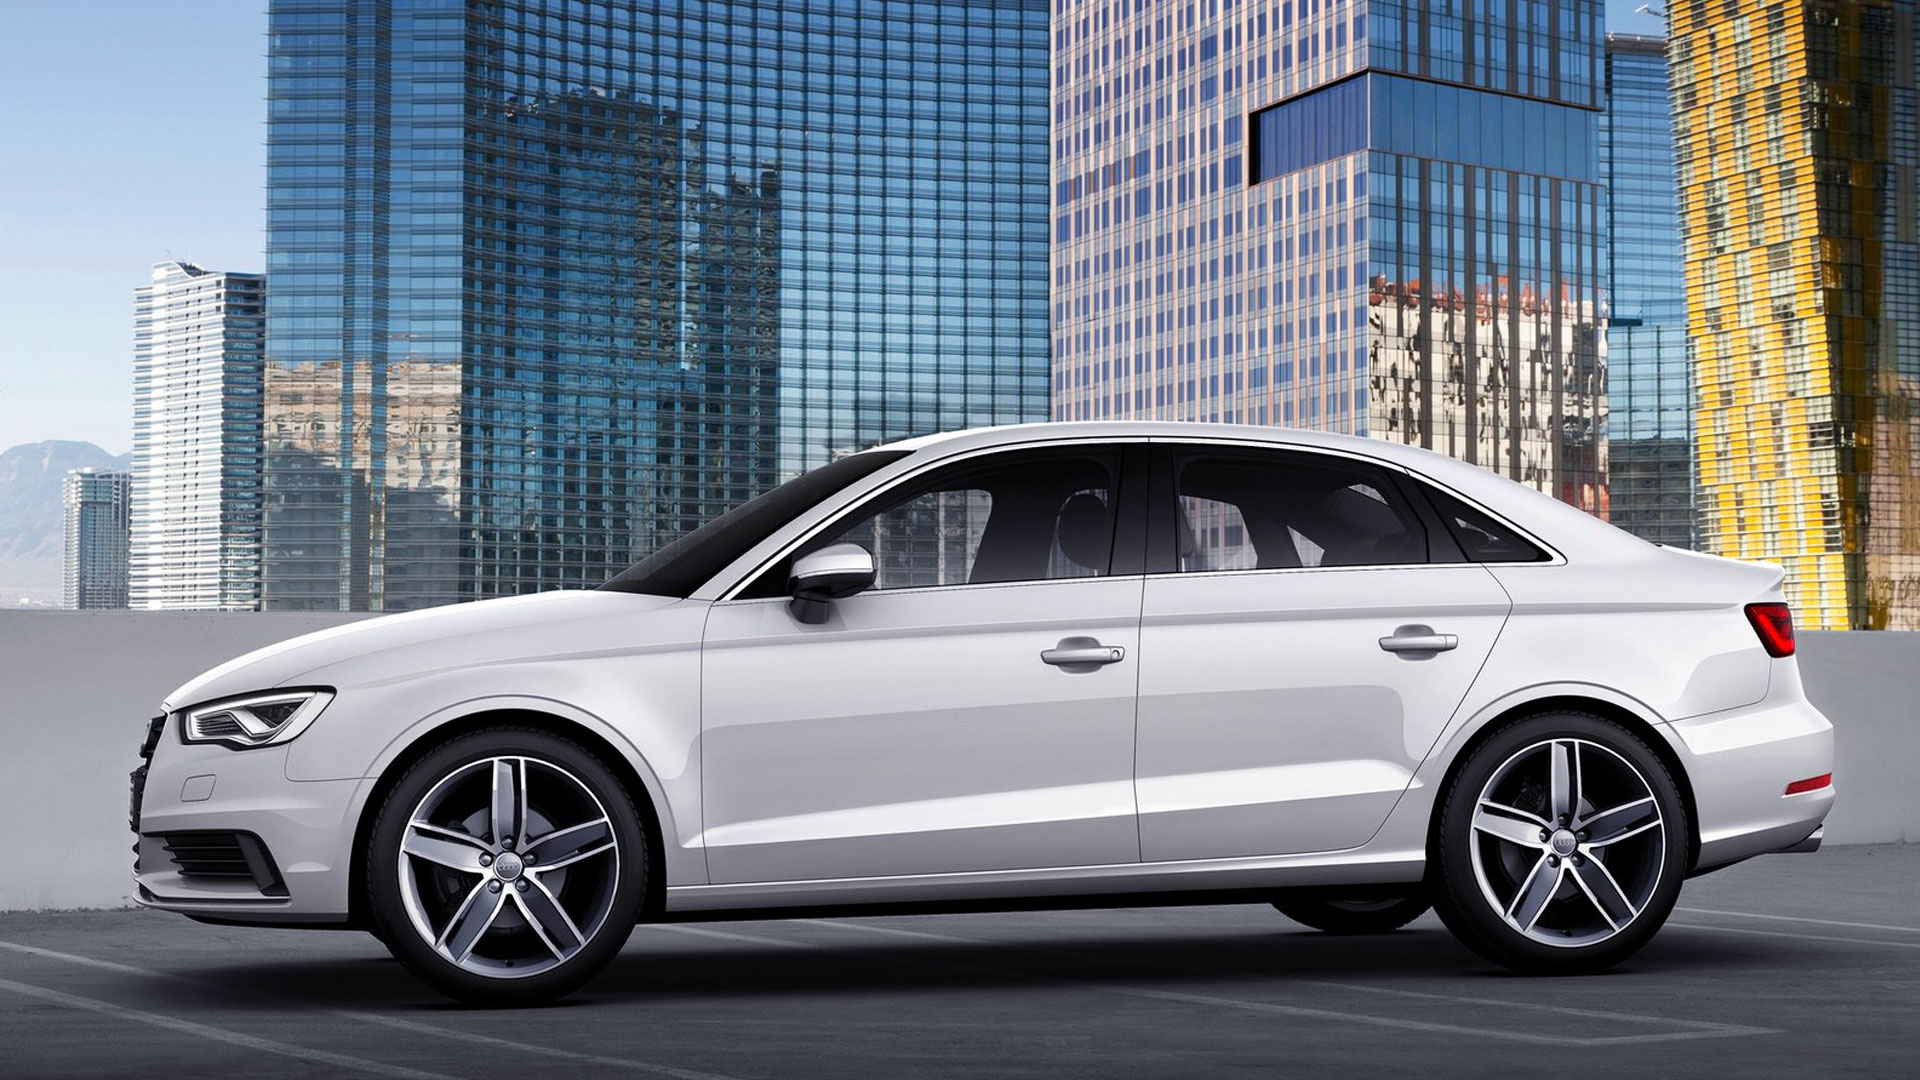 Download   2014 Audi A3 Sedan HD Wallpaper